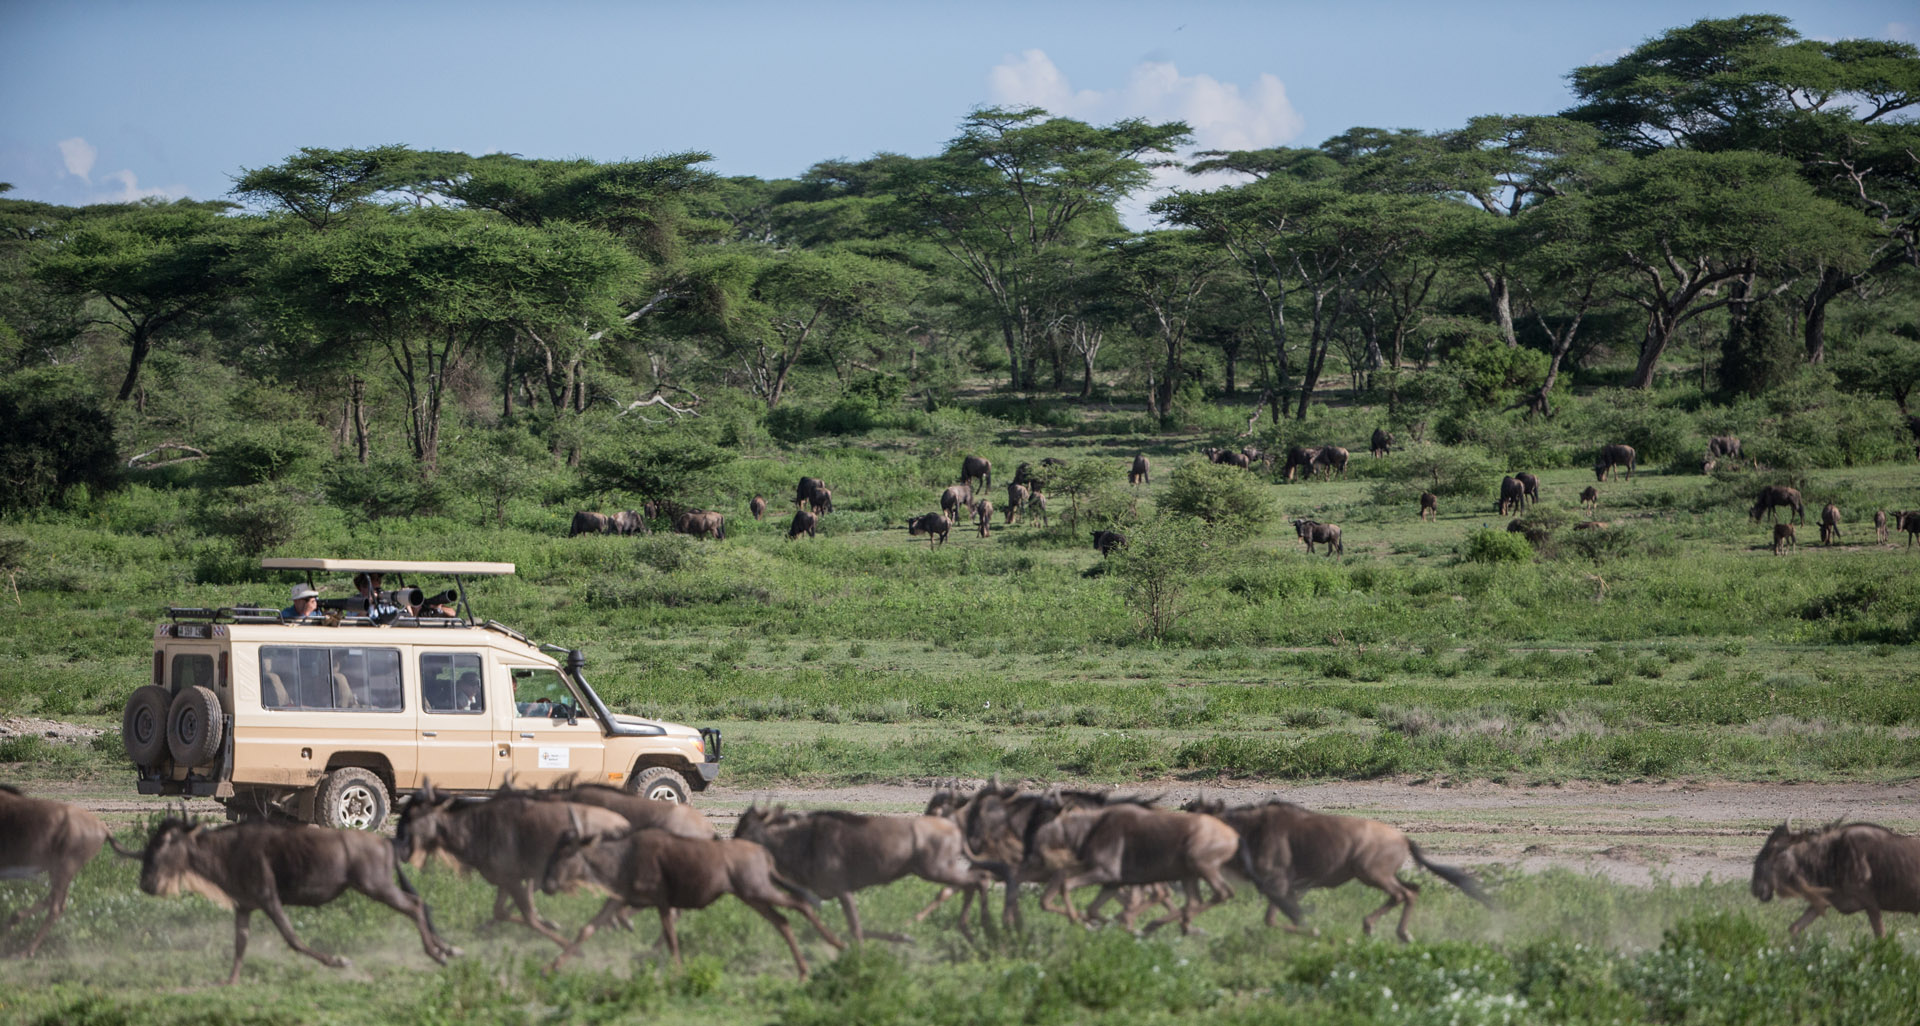 wildebeests Serengeti, Safari small Grup Tanzania